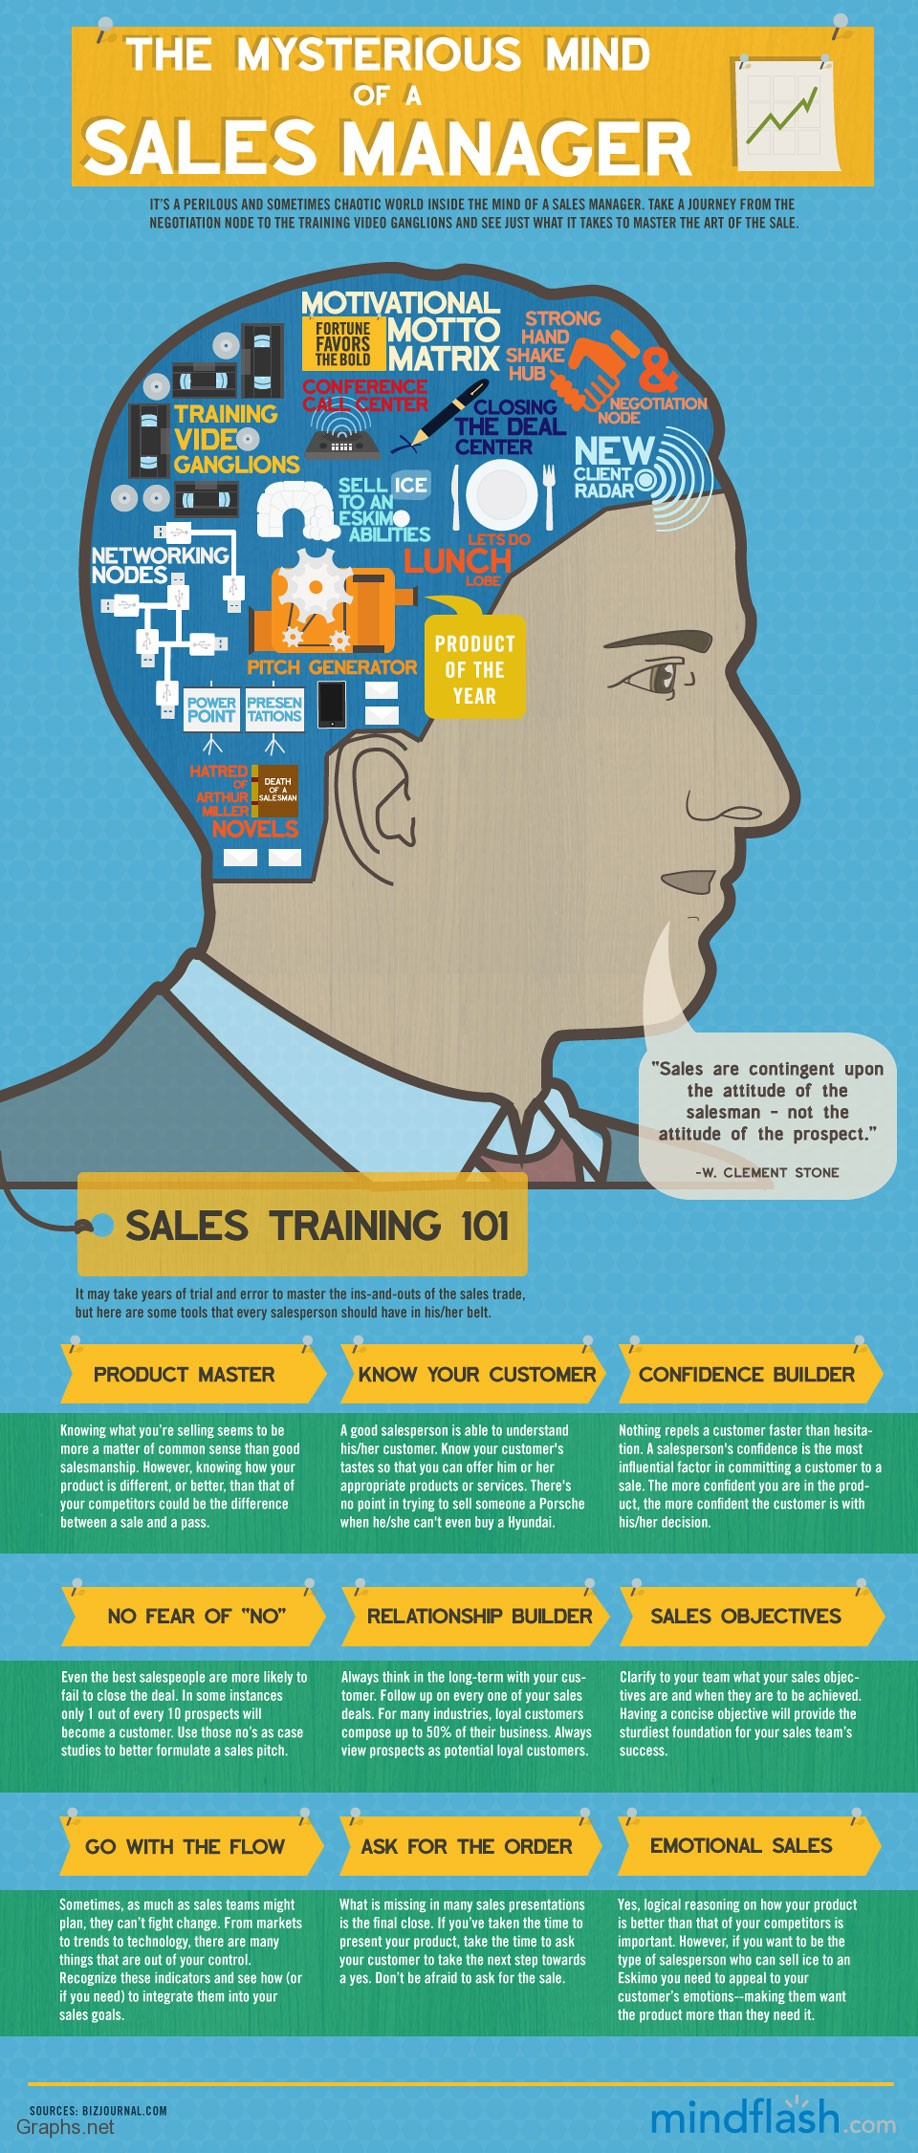 The mind of a sales manager